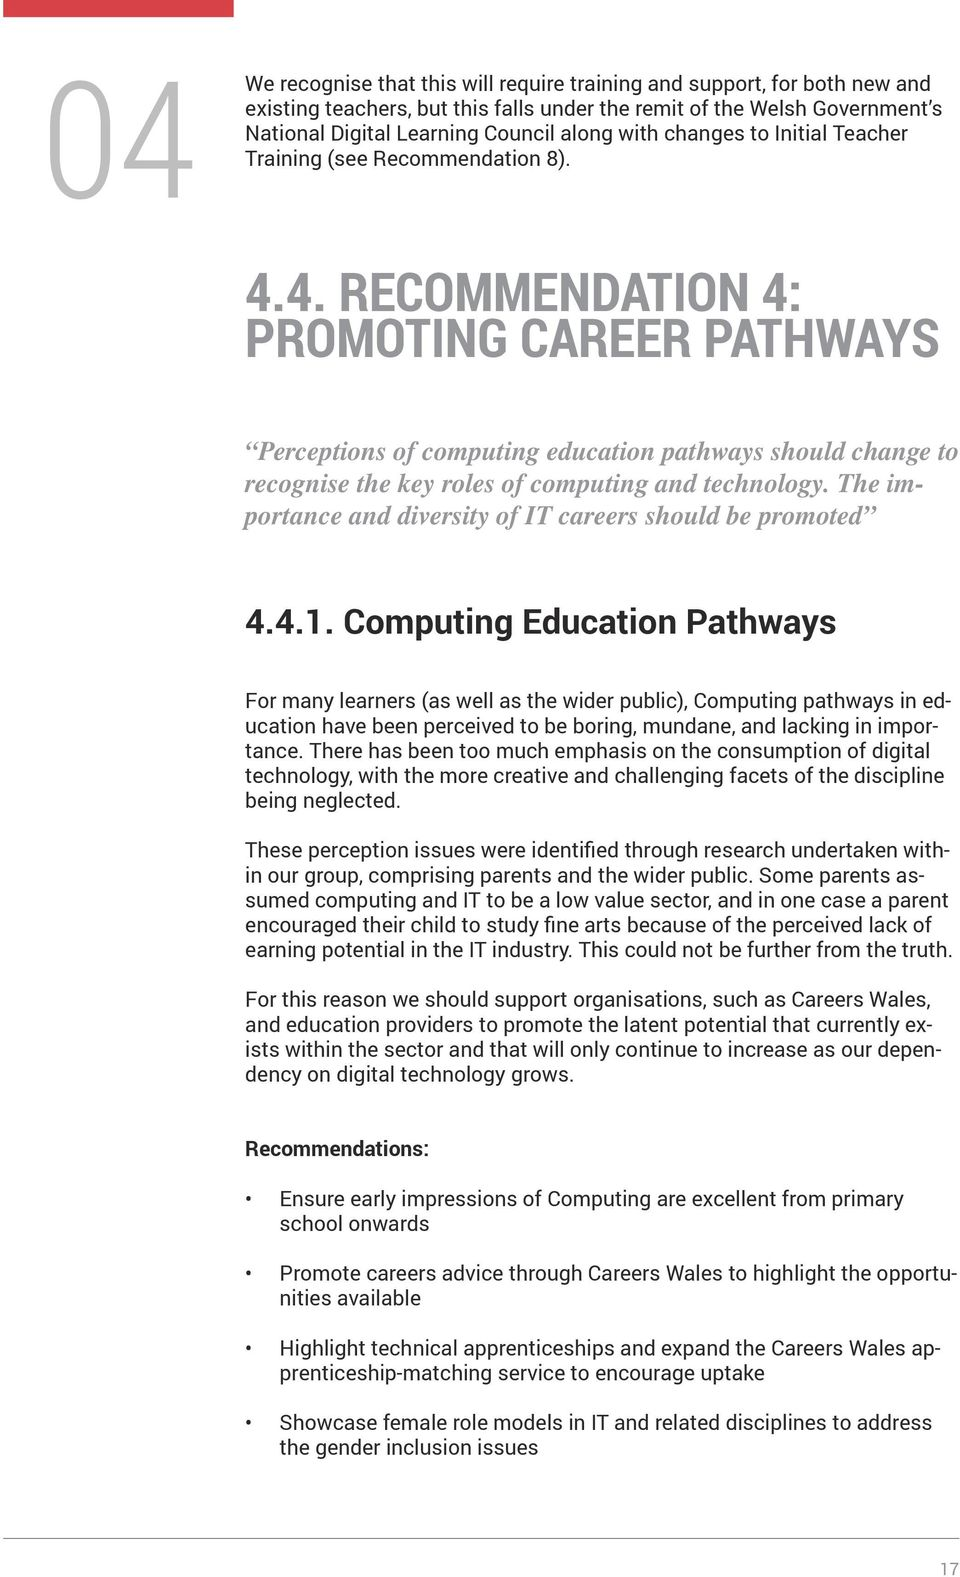 4. RECOMMENDATION 4: PROMOTING CAREER PATHWAYS Perceptions of computing education pathways should change to recognise the key roles of computing and technology.